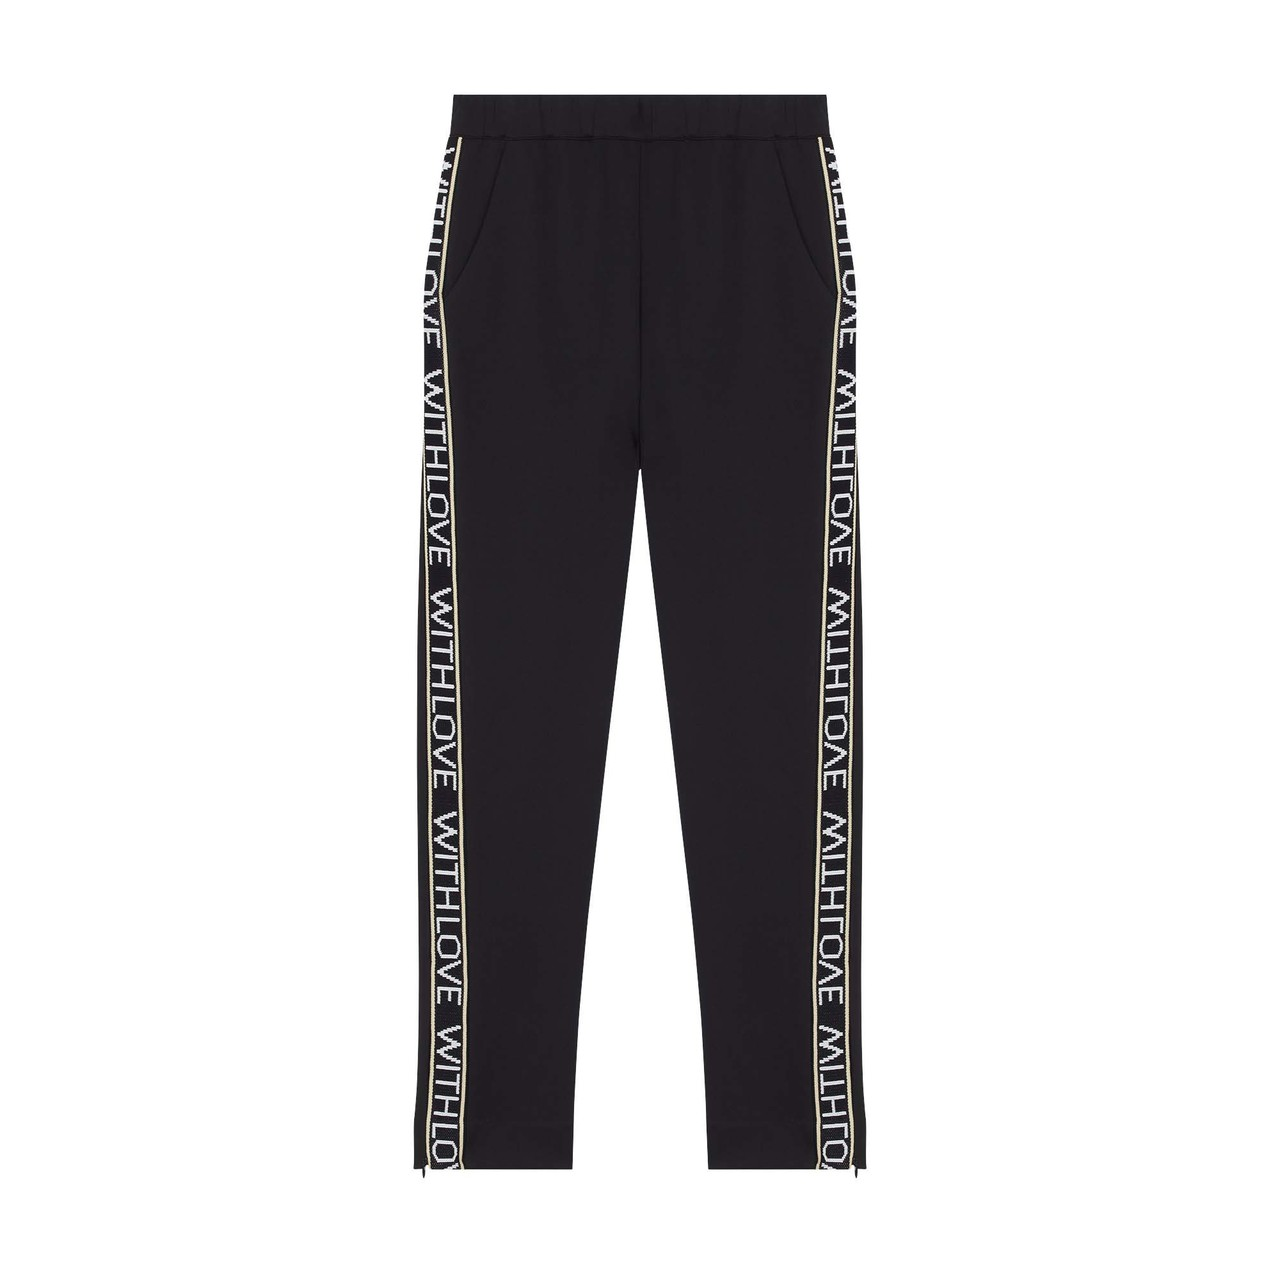 Jogging Pants With Elastic Waist - Black